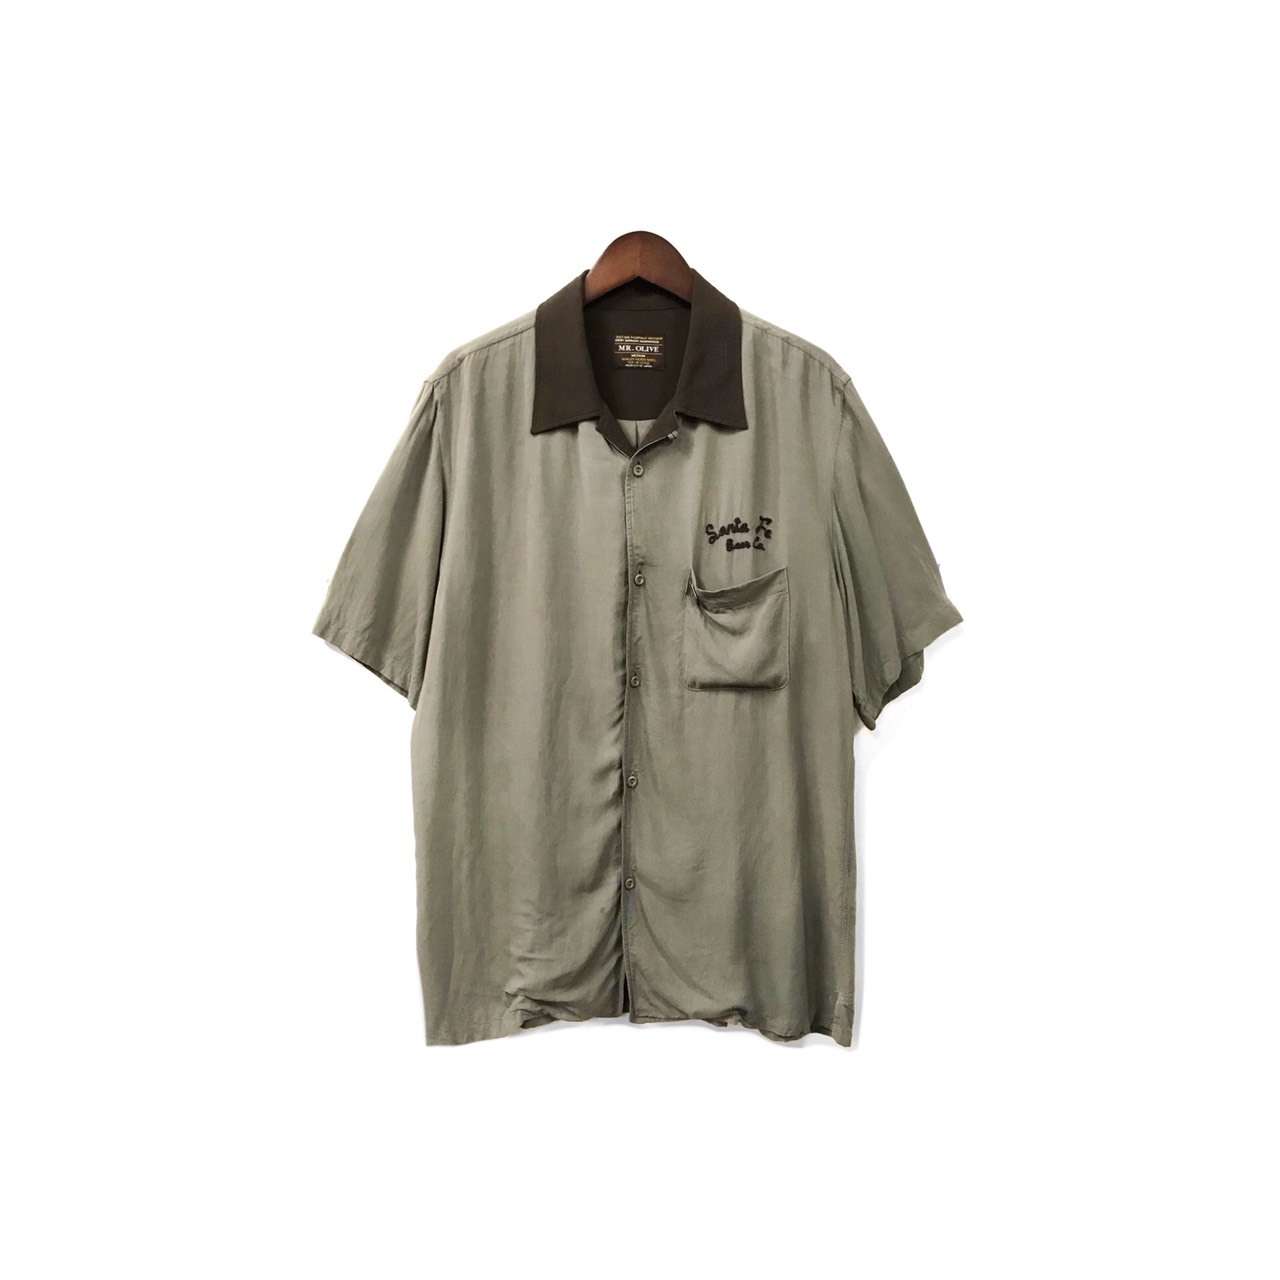 MR.OLIVE - Open Collar Rayon Shirt (size - M) ¥9000+tax → ¥7200+tax